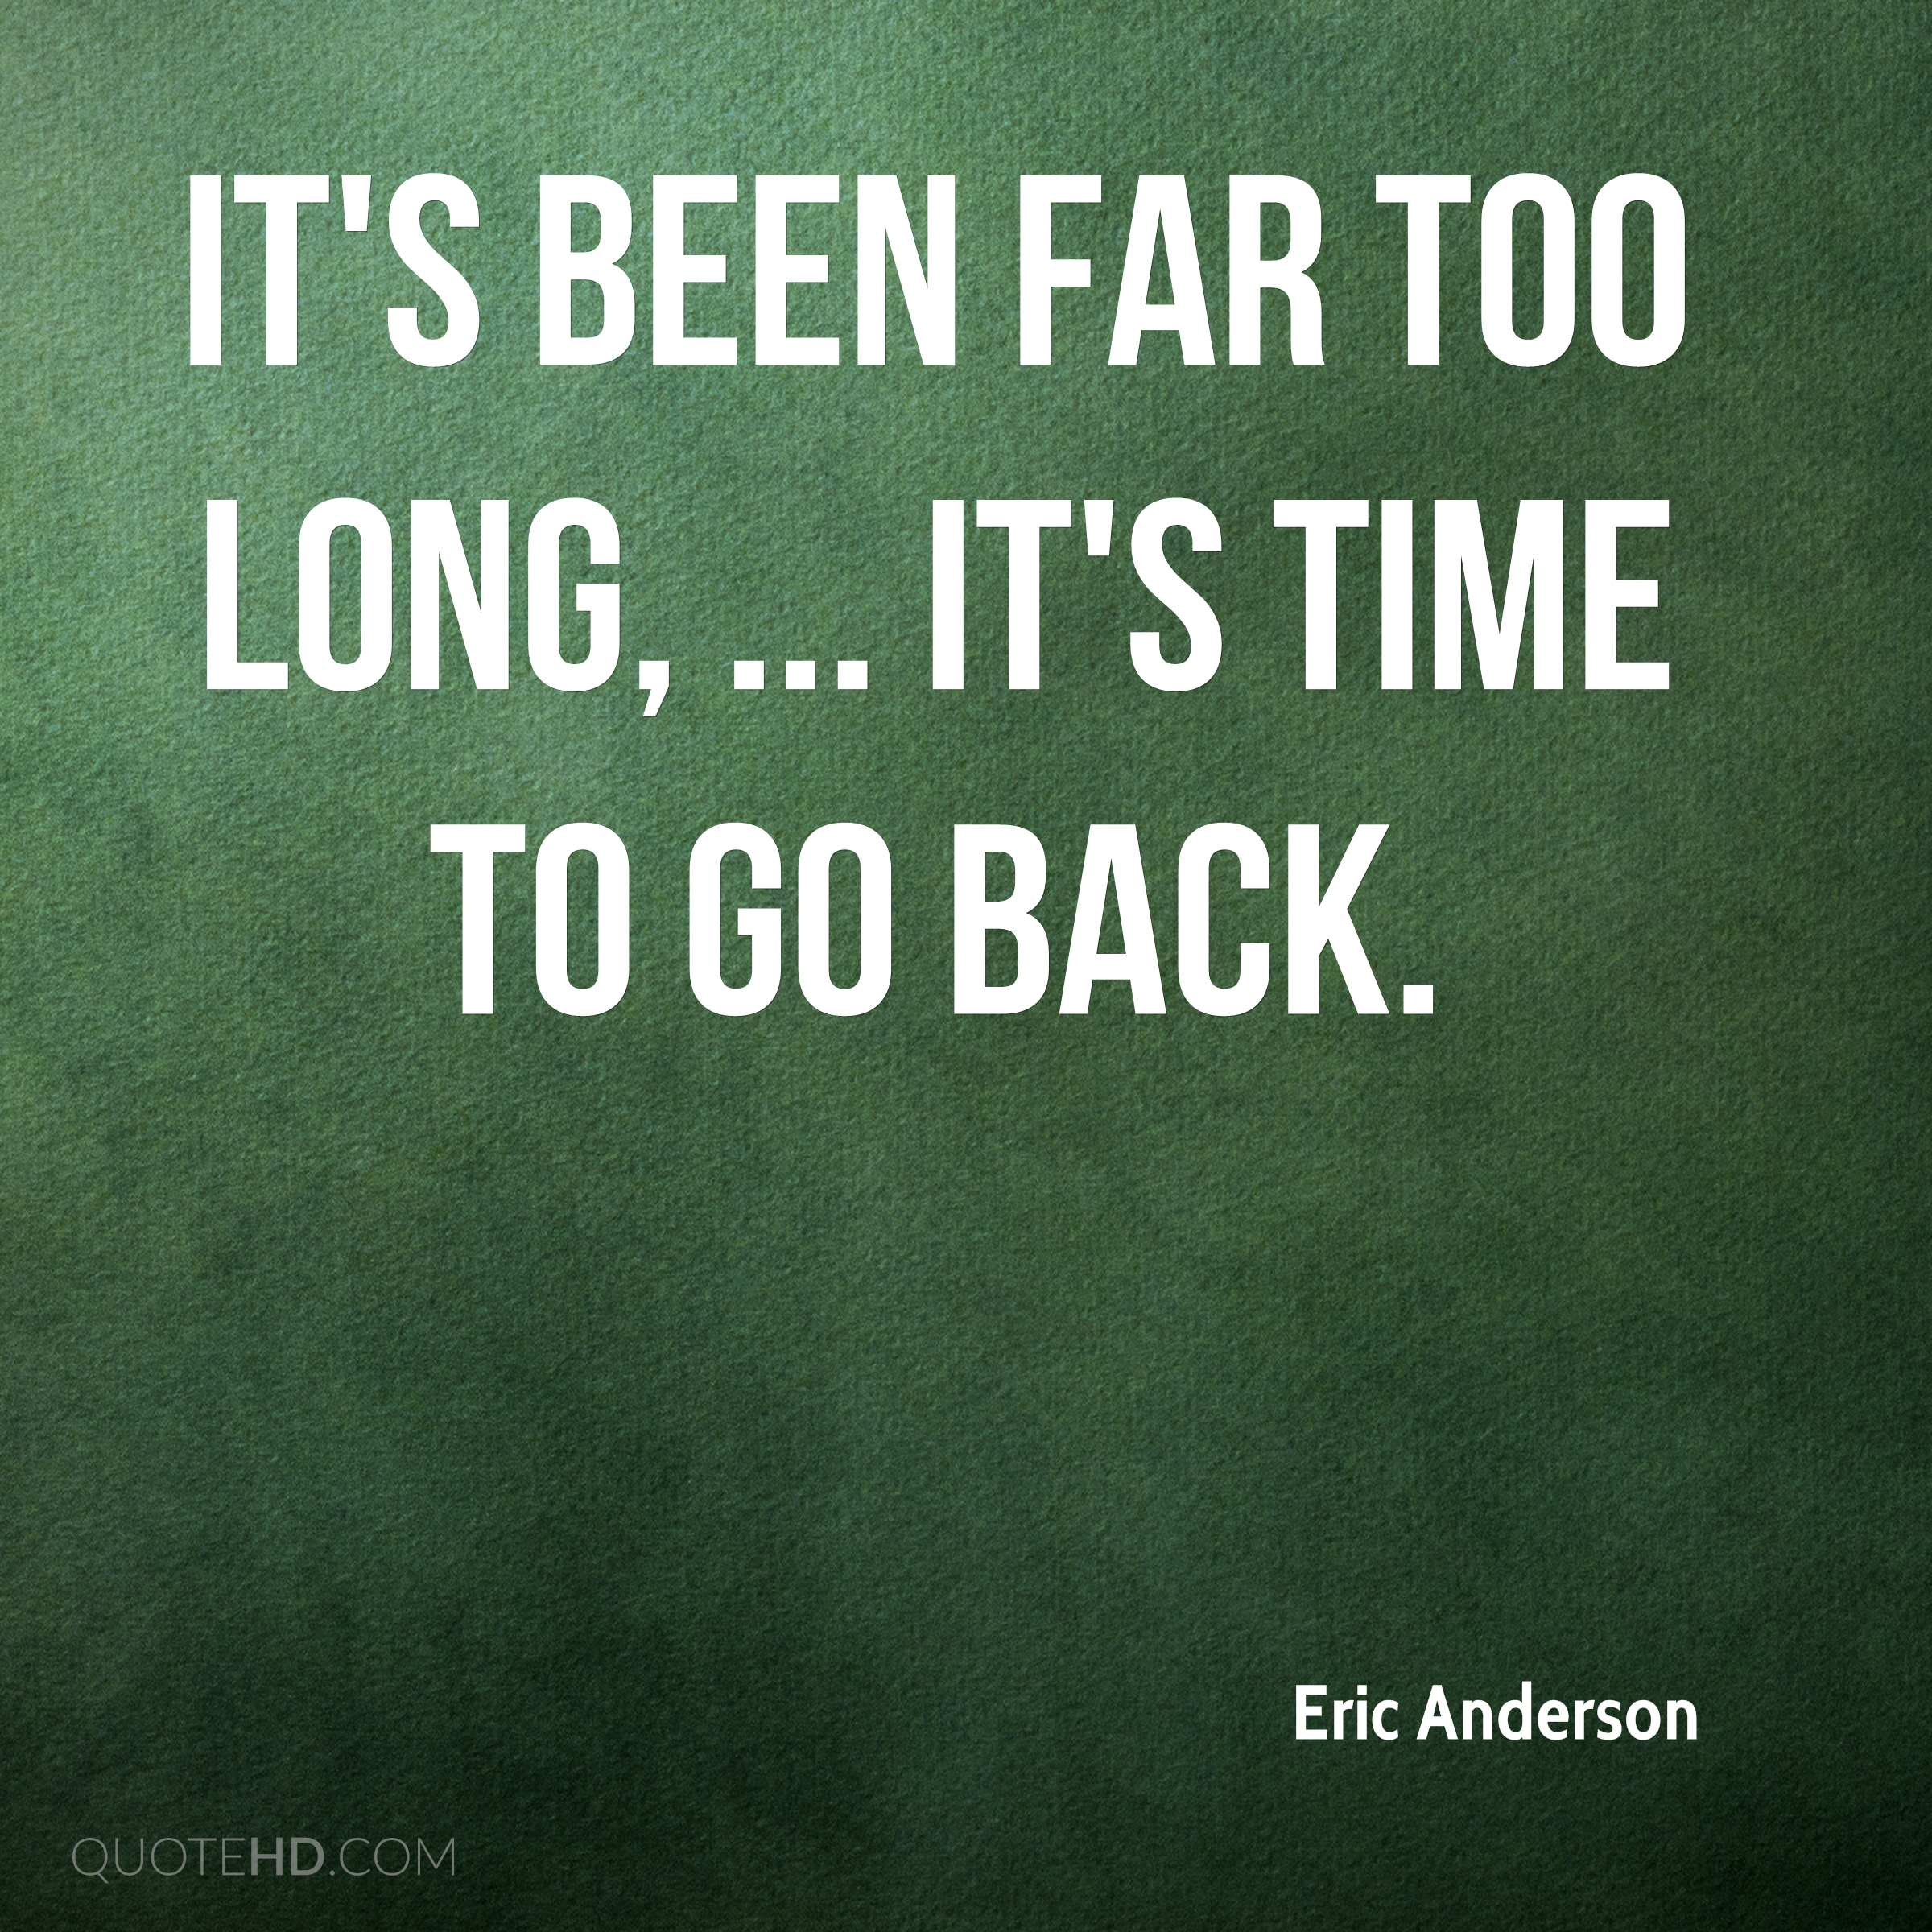 Its Been A Long Time Quotes: Eric Anderson Quotes